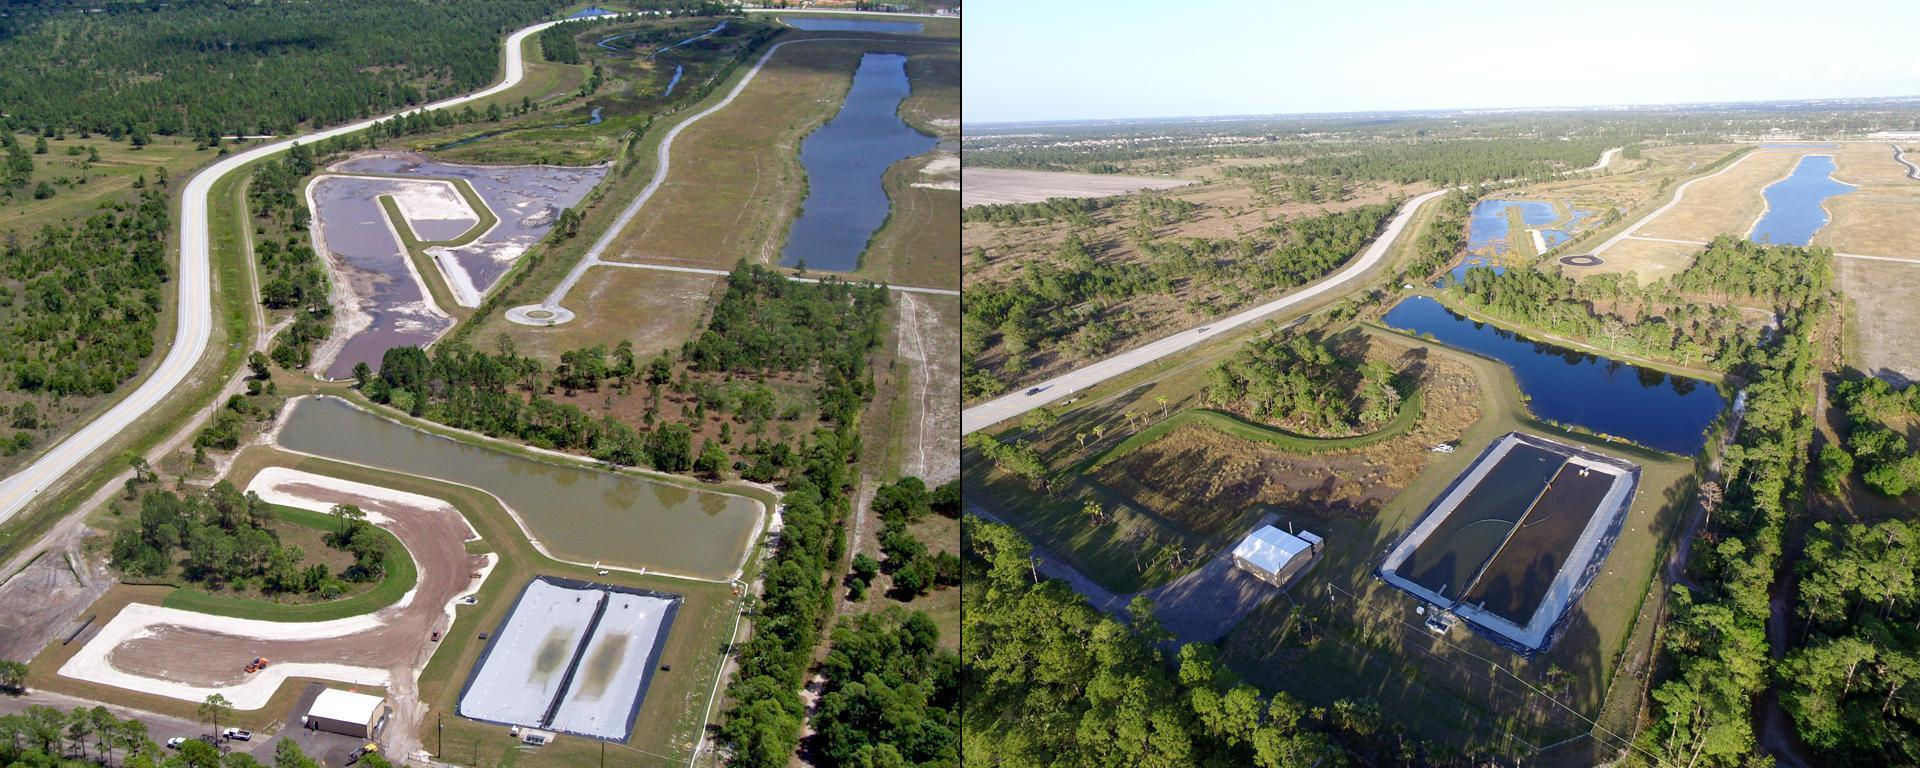 An image of the Bessey Creek project before and after